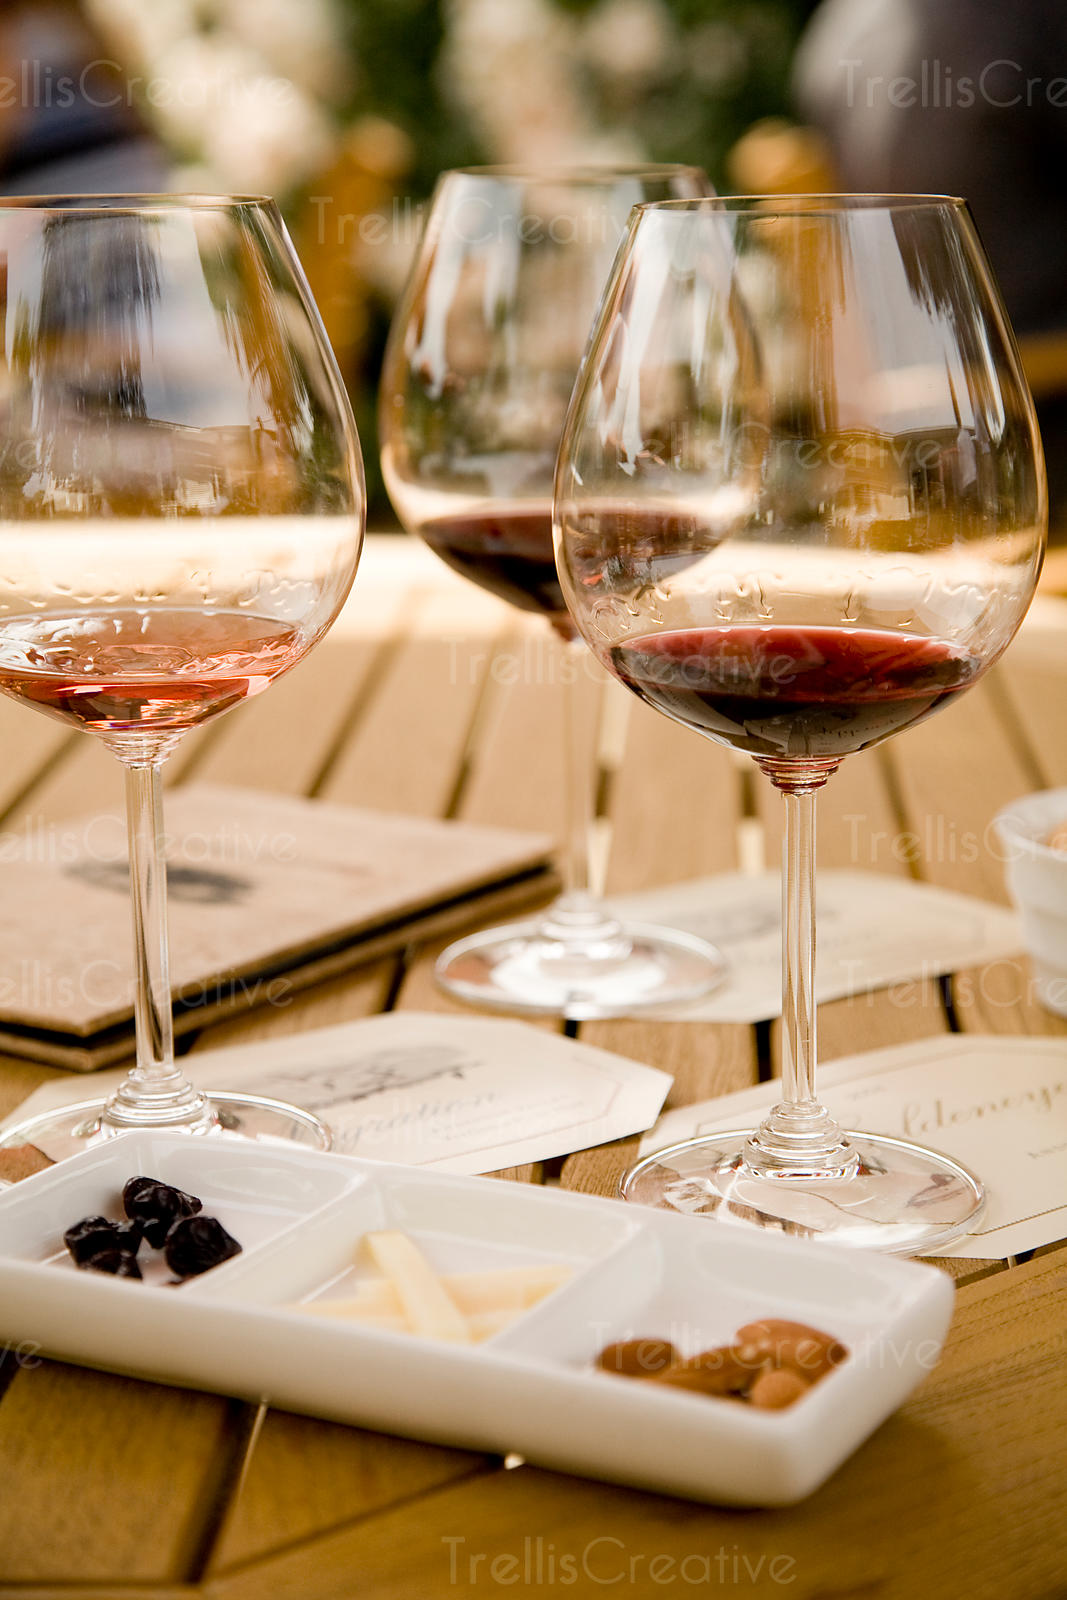 Outdoor wine and food pairing with pinot noir in shiny wine glasses